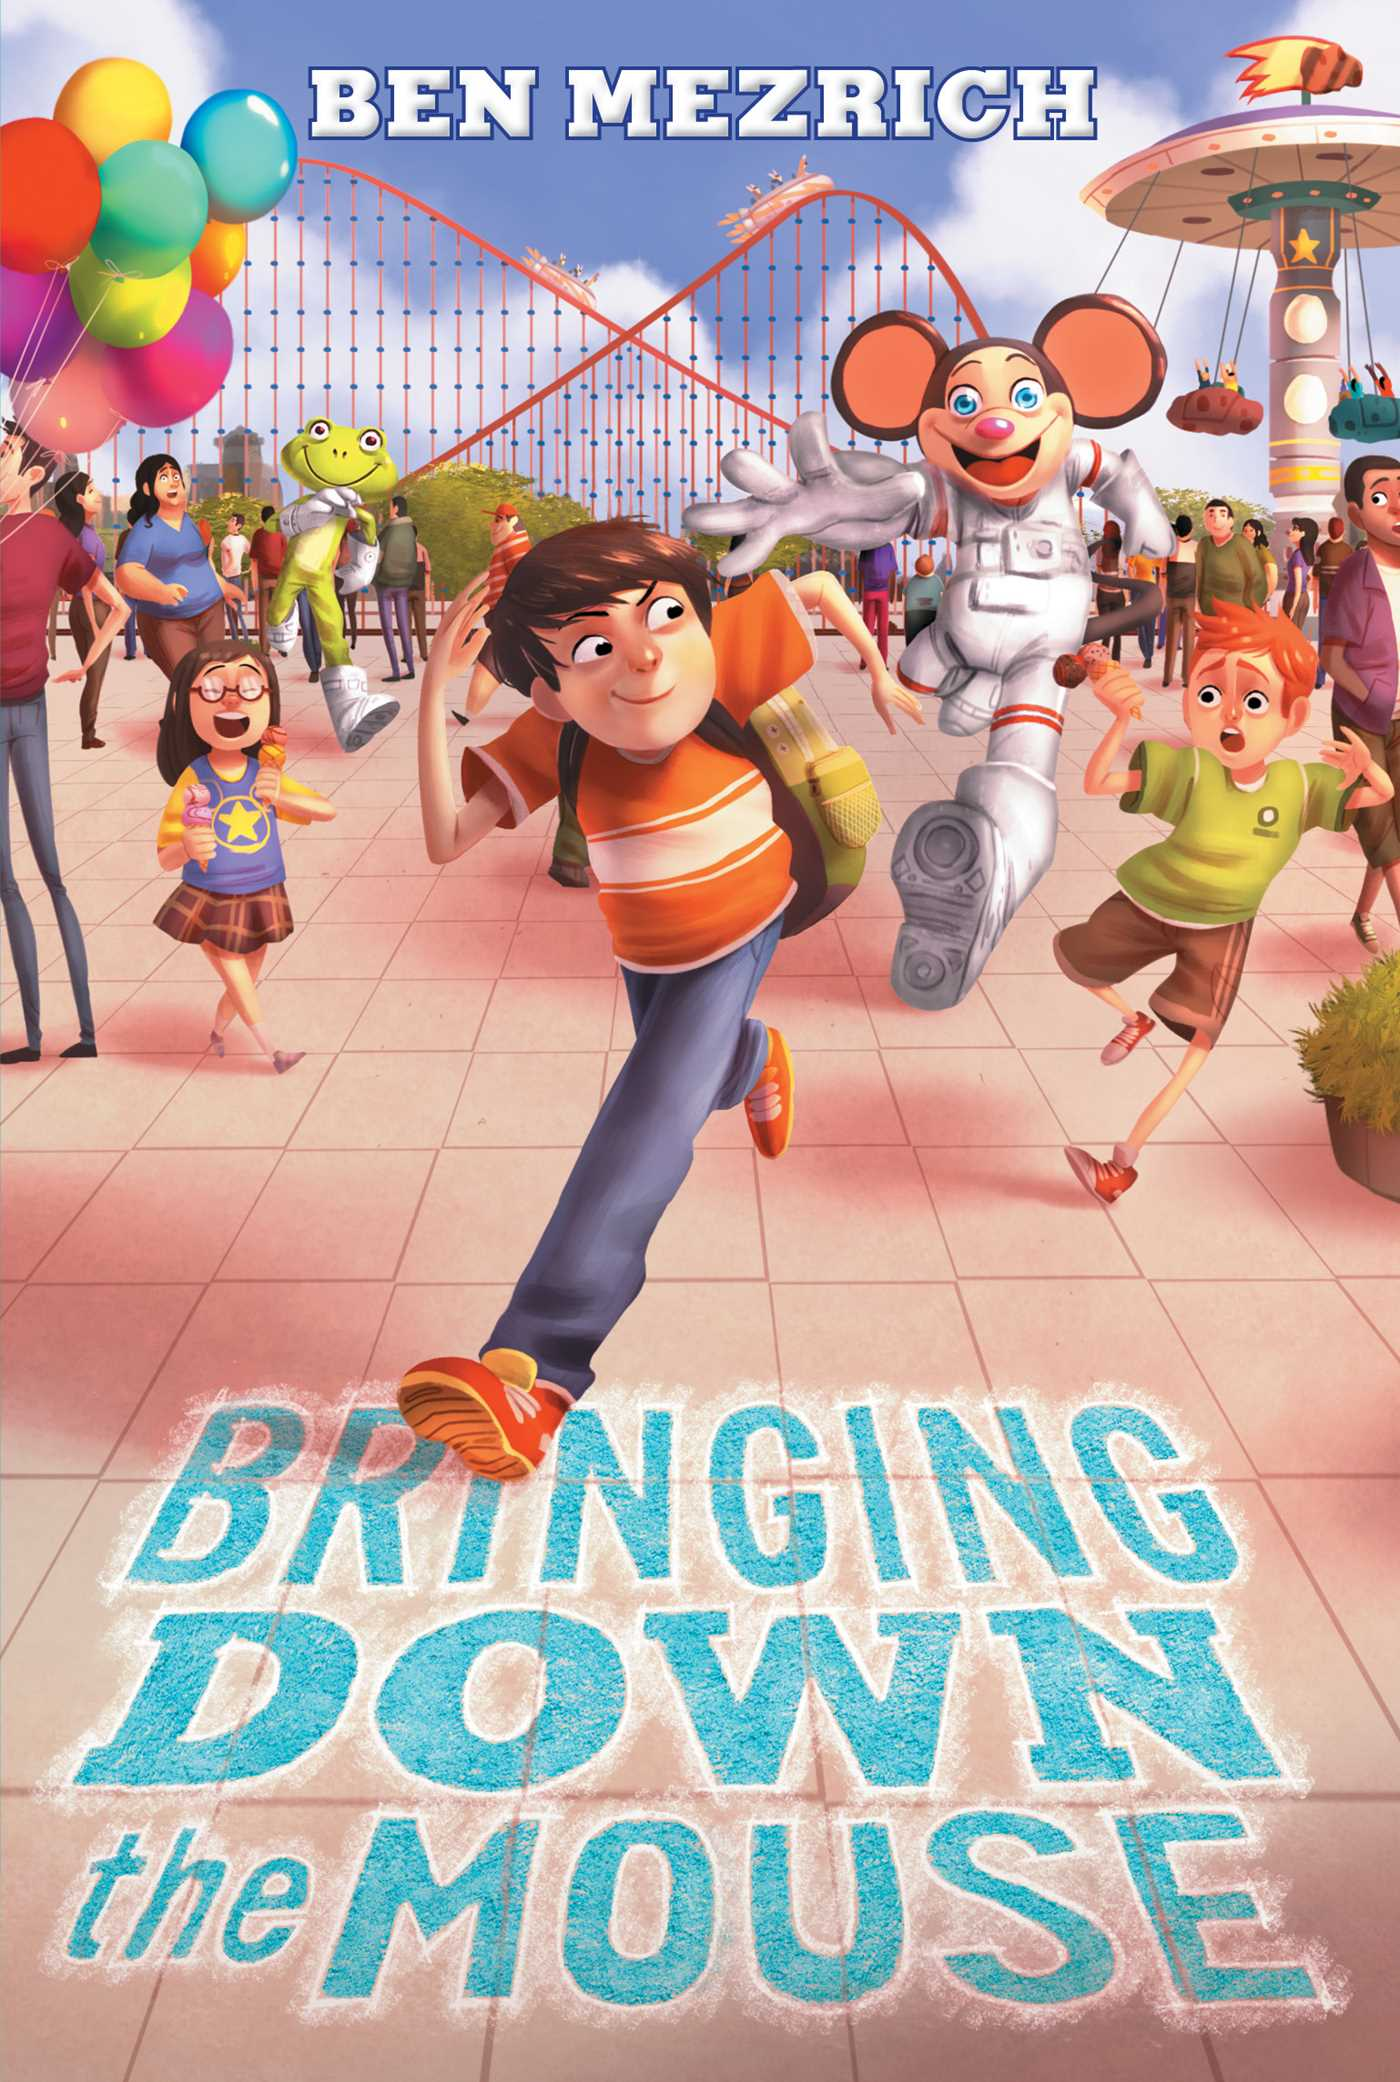 Bringing Down The Mouse Ebook By Ben Mezrich Official Publisher